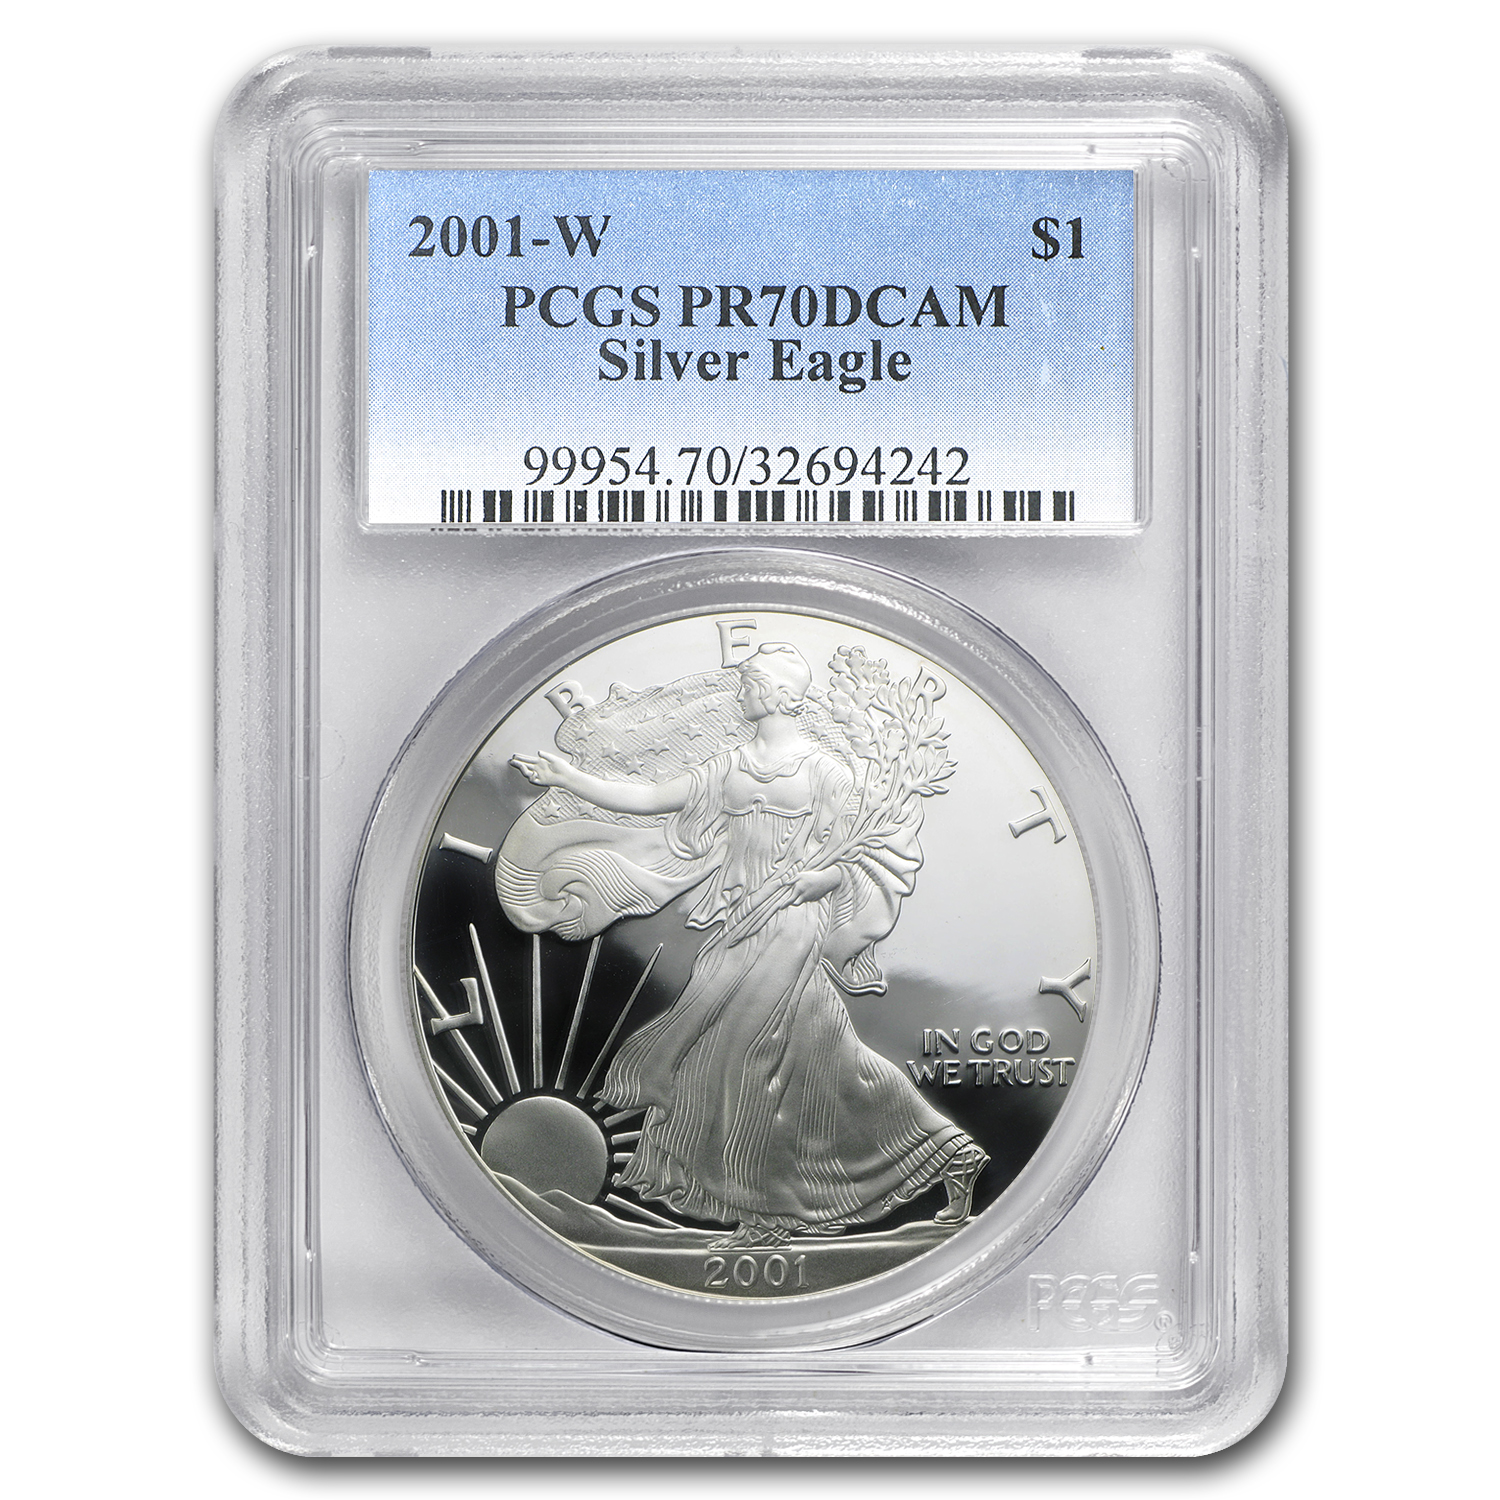 2001-W Proof Silver American Eagle PR-70 PCGS